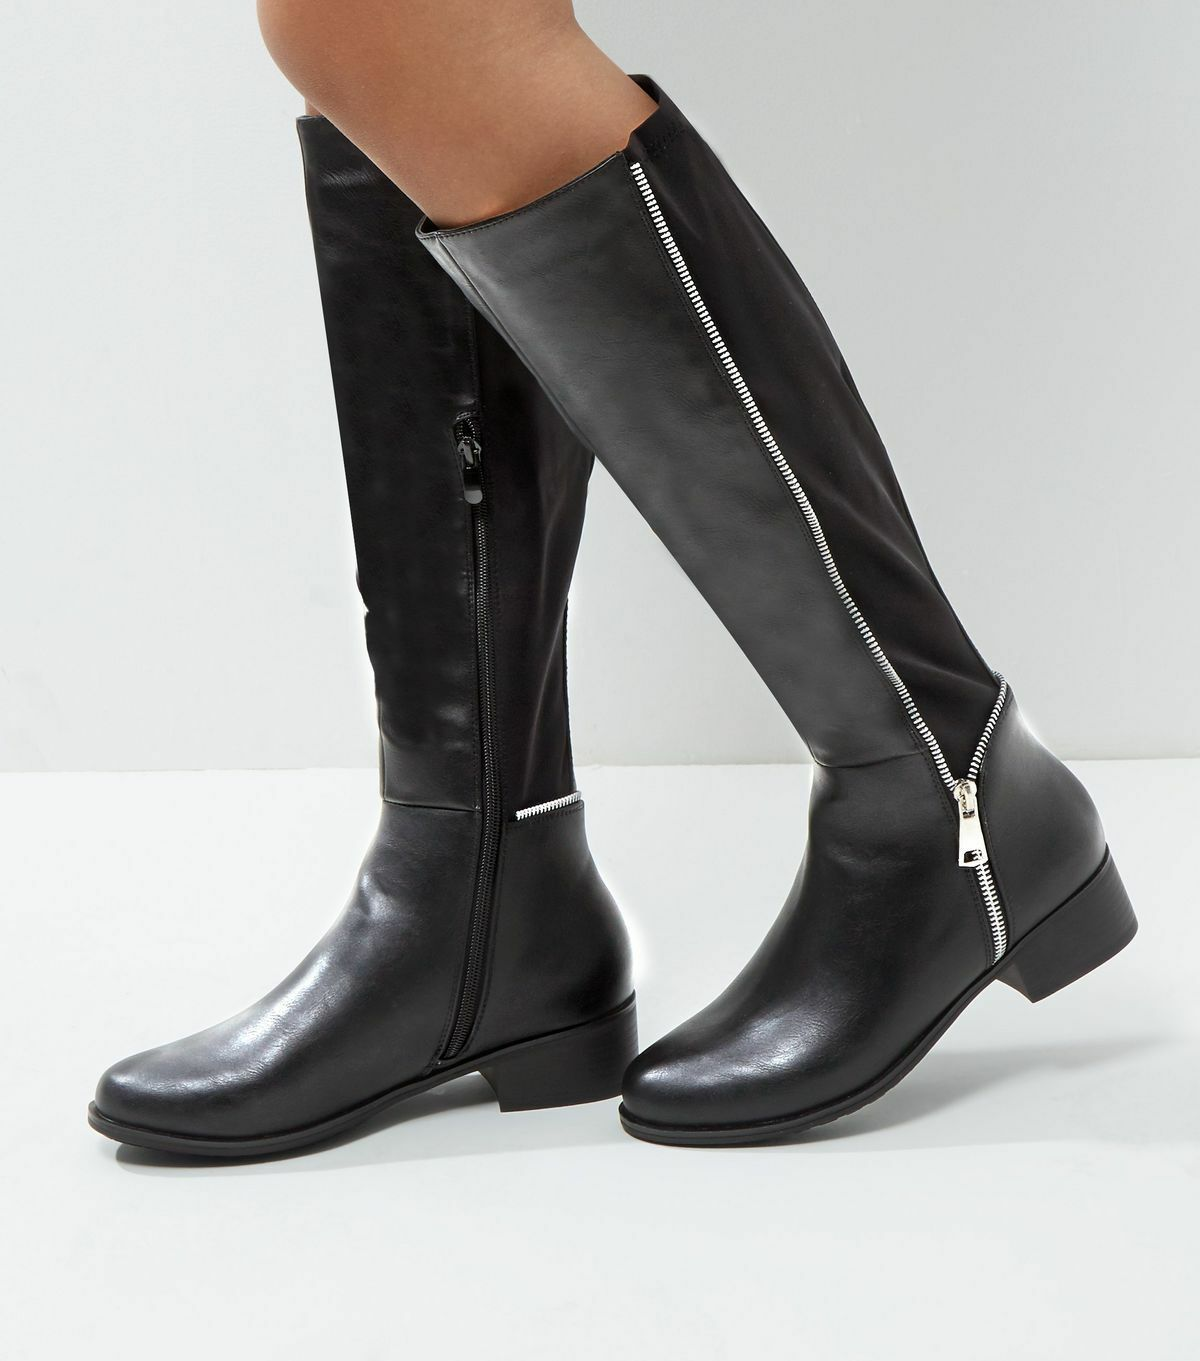 Brand New New Look Black Zip Side Knee High Boots Size 5 Must Have